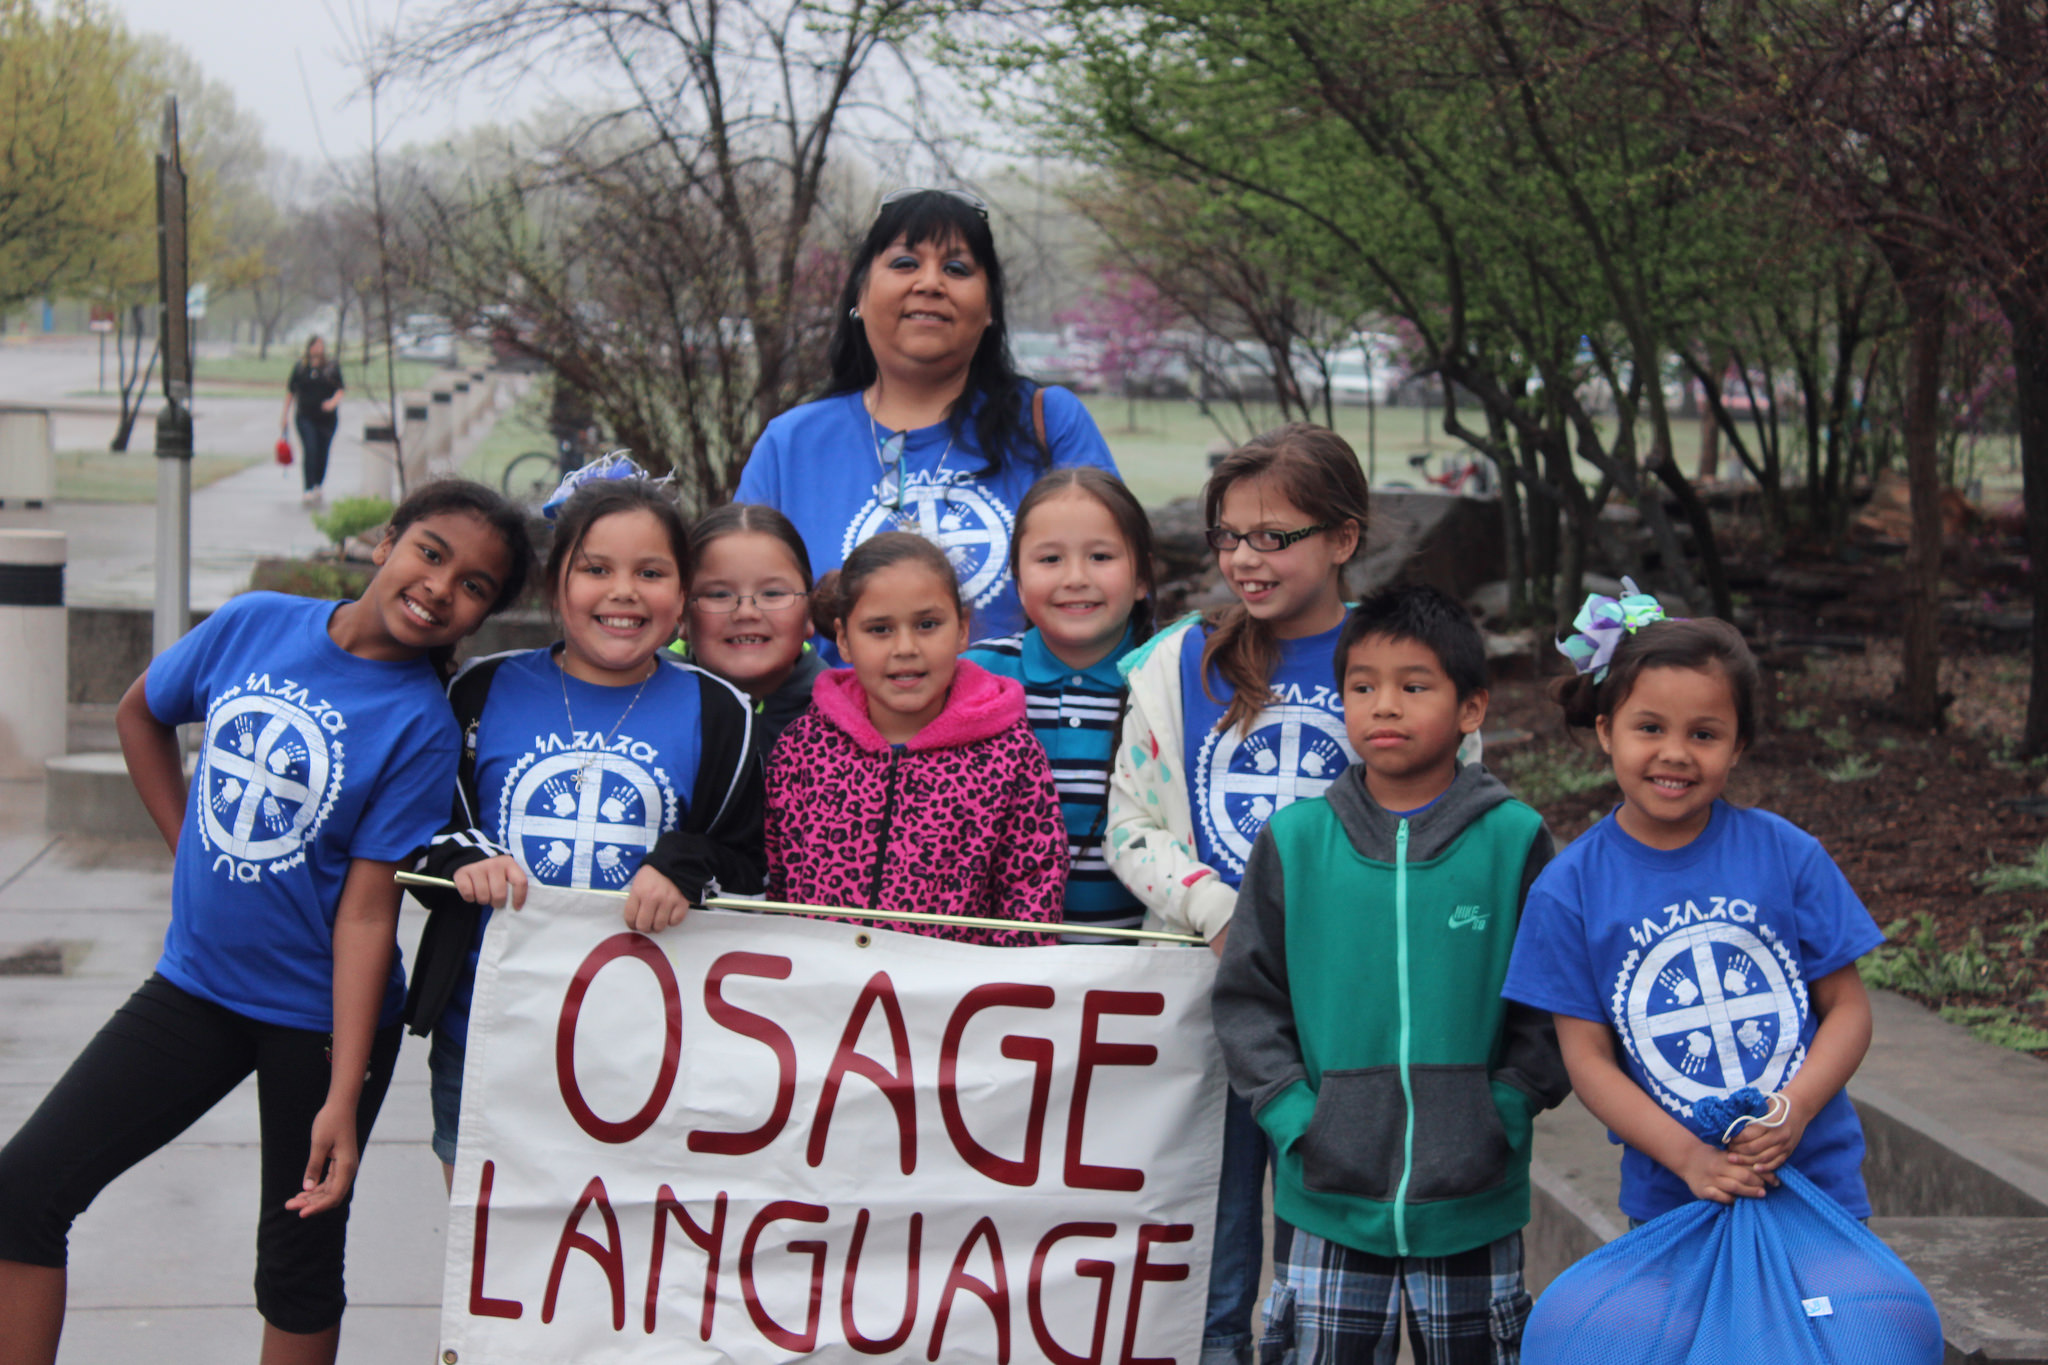 Osage youth win big at Oklahoma Native American Youth Language Fair